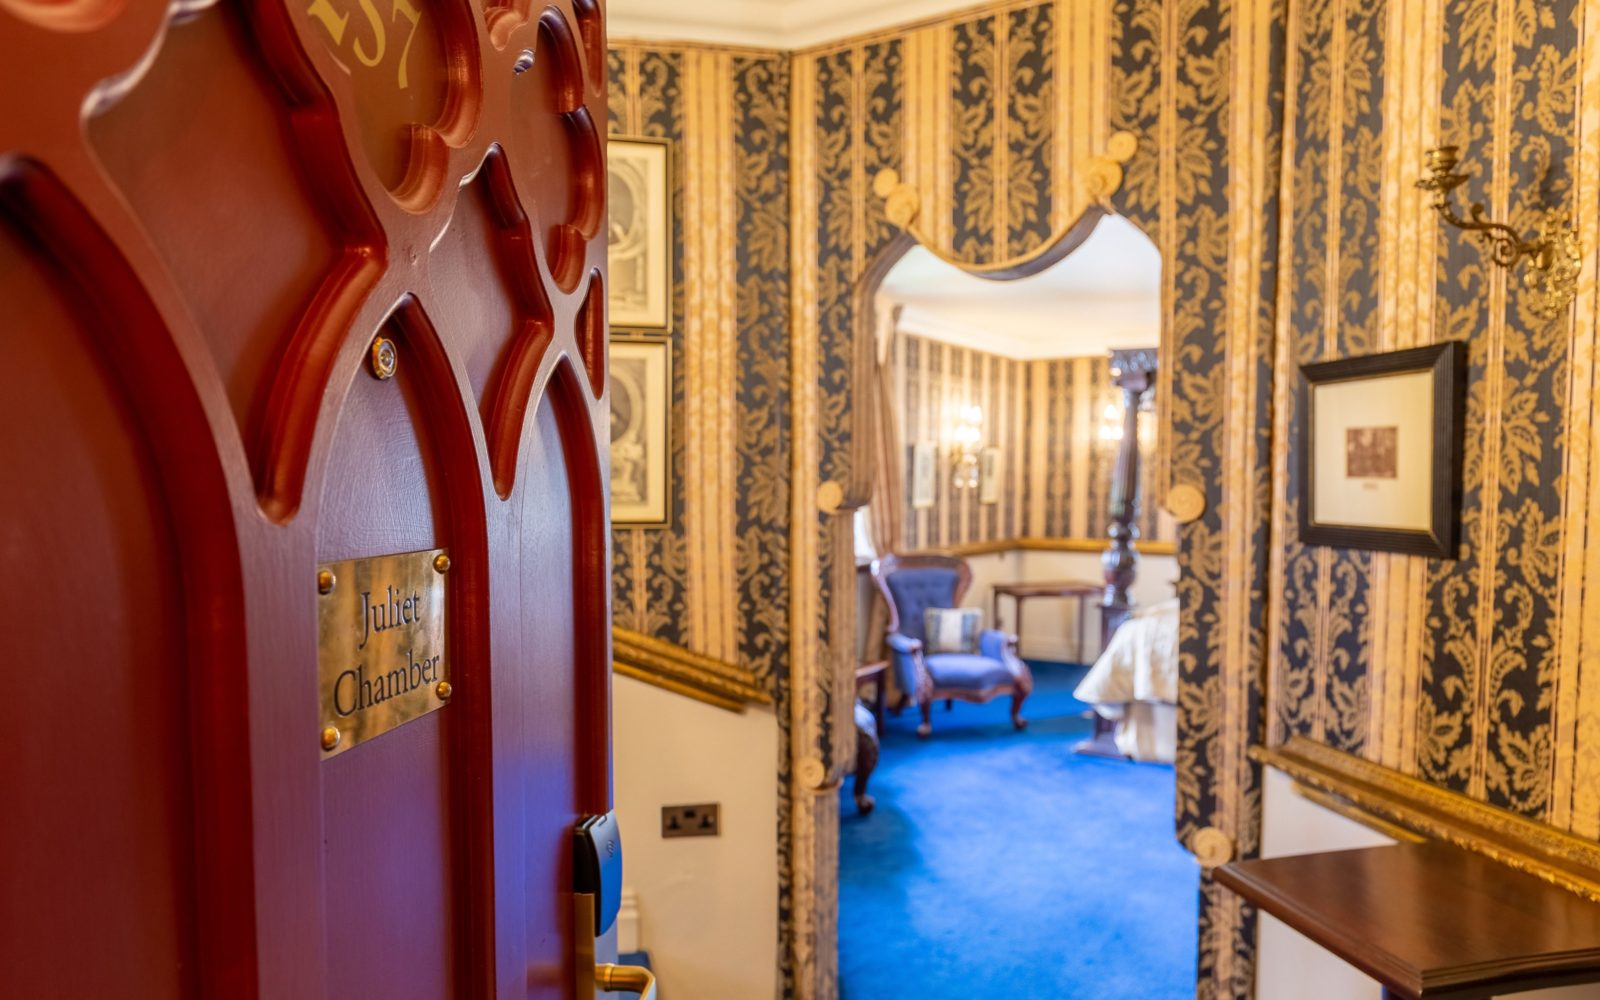 Coombe Abbey Juliet Room